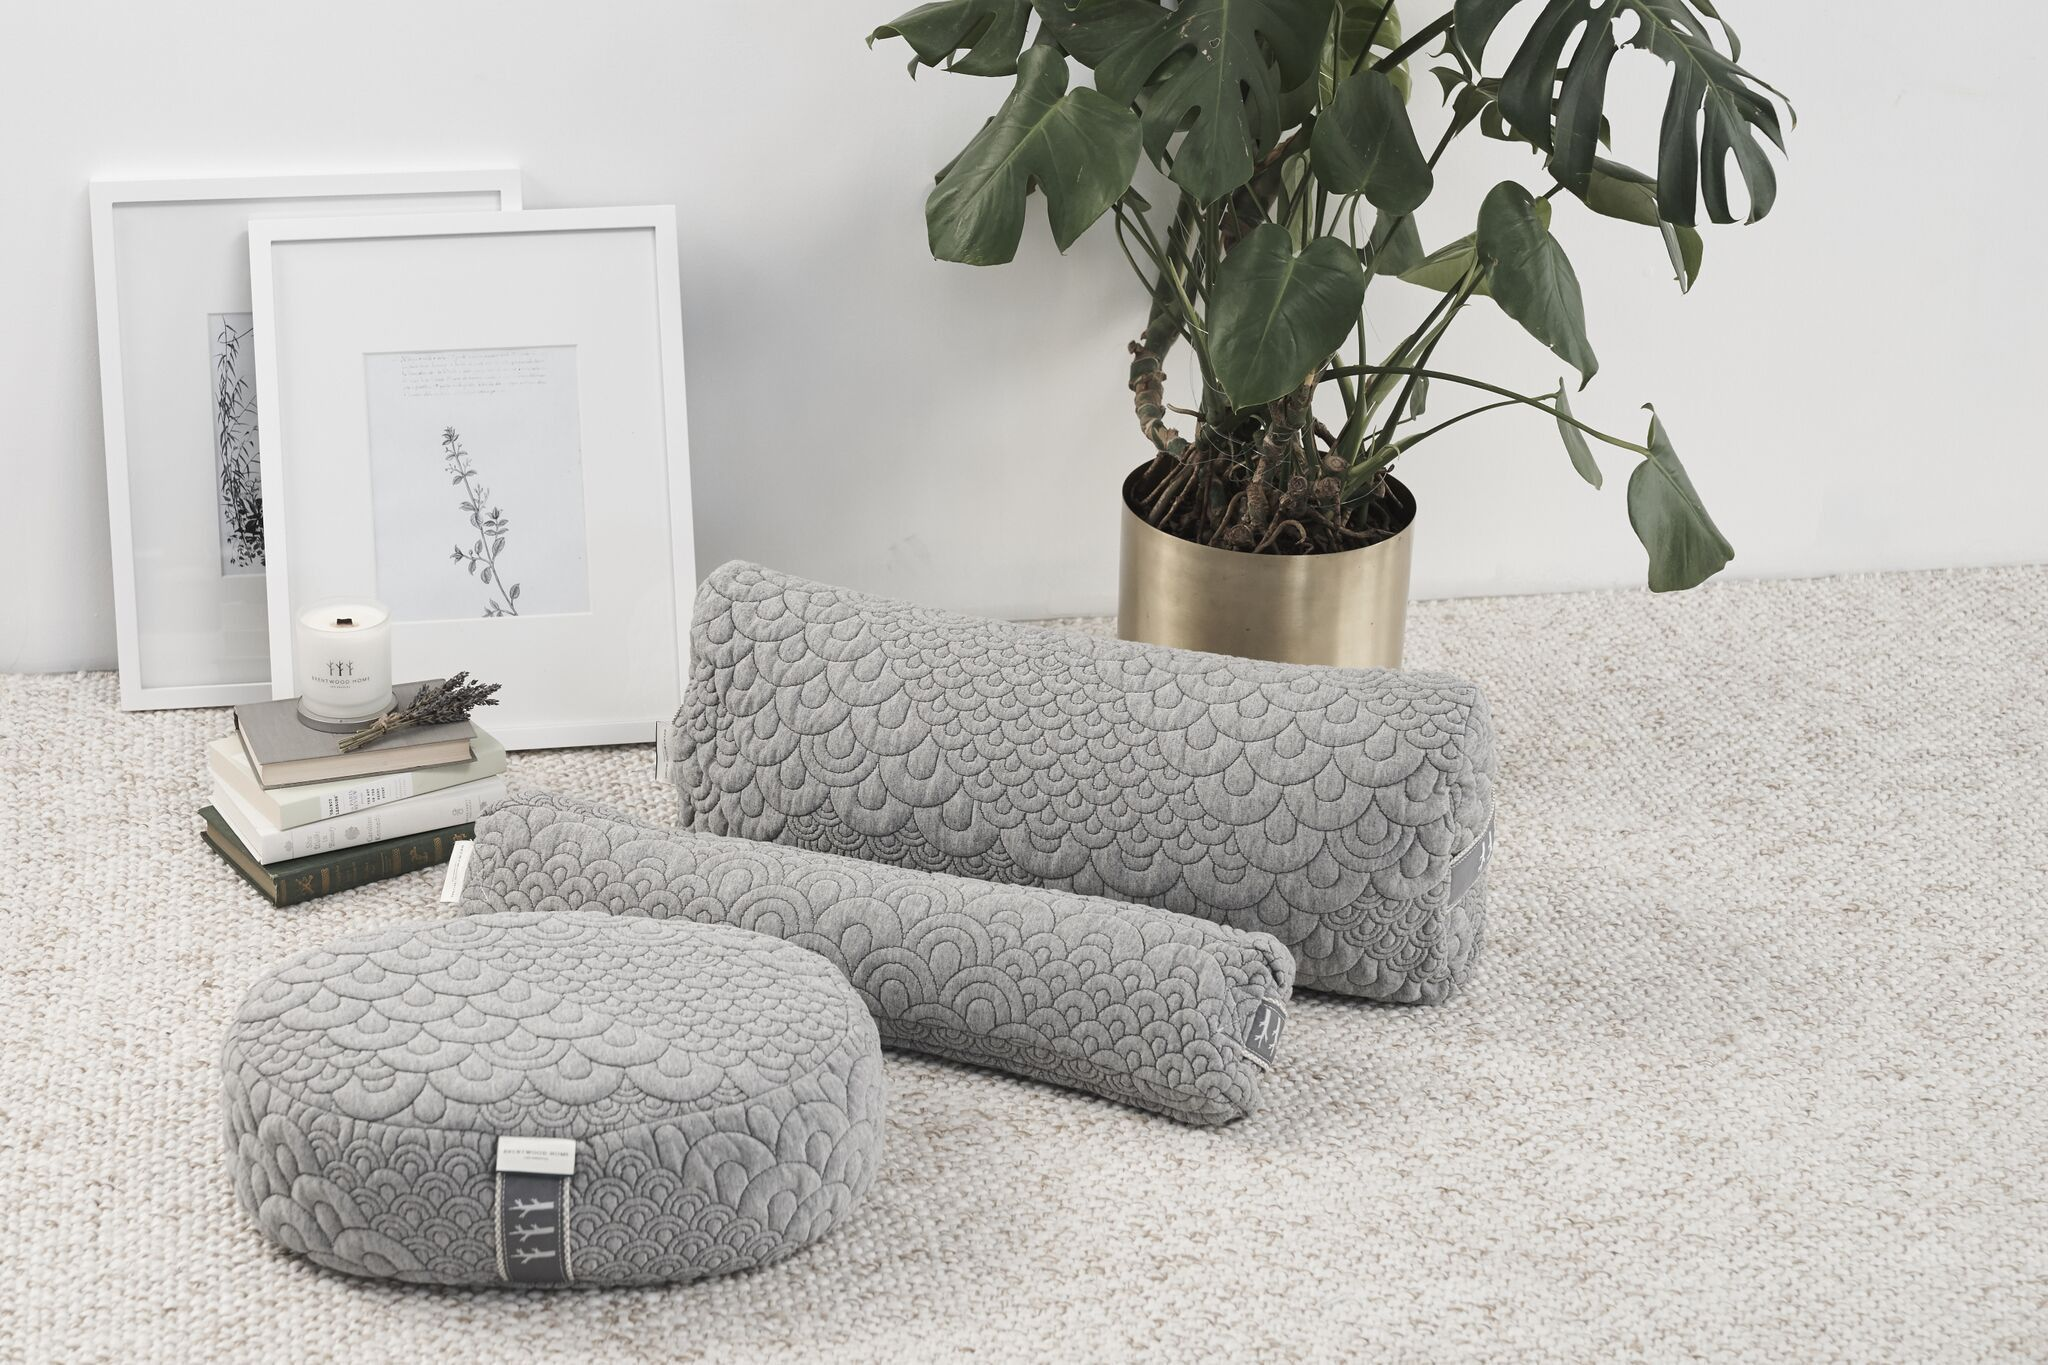 The crystal cove bundle combines our yoga bolster meditation